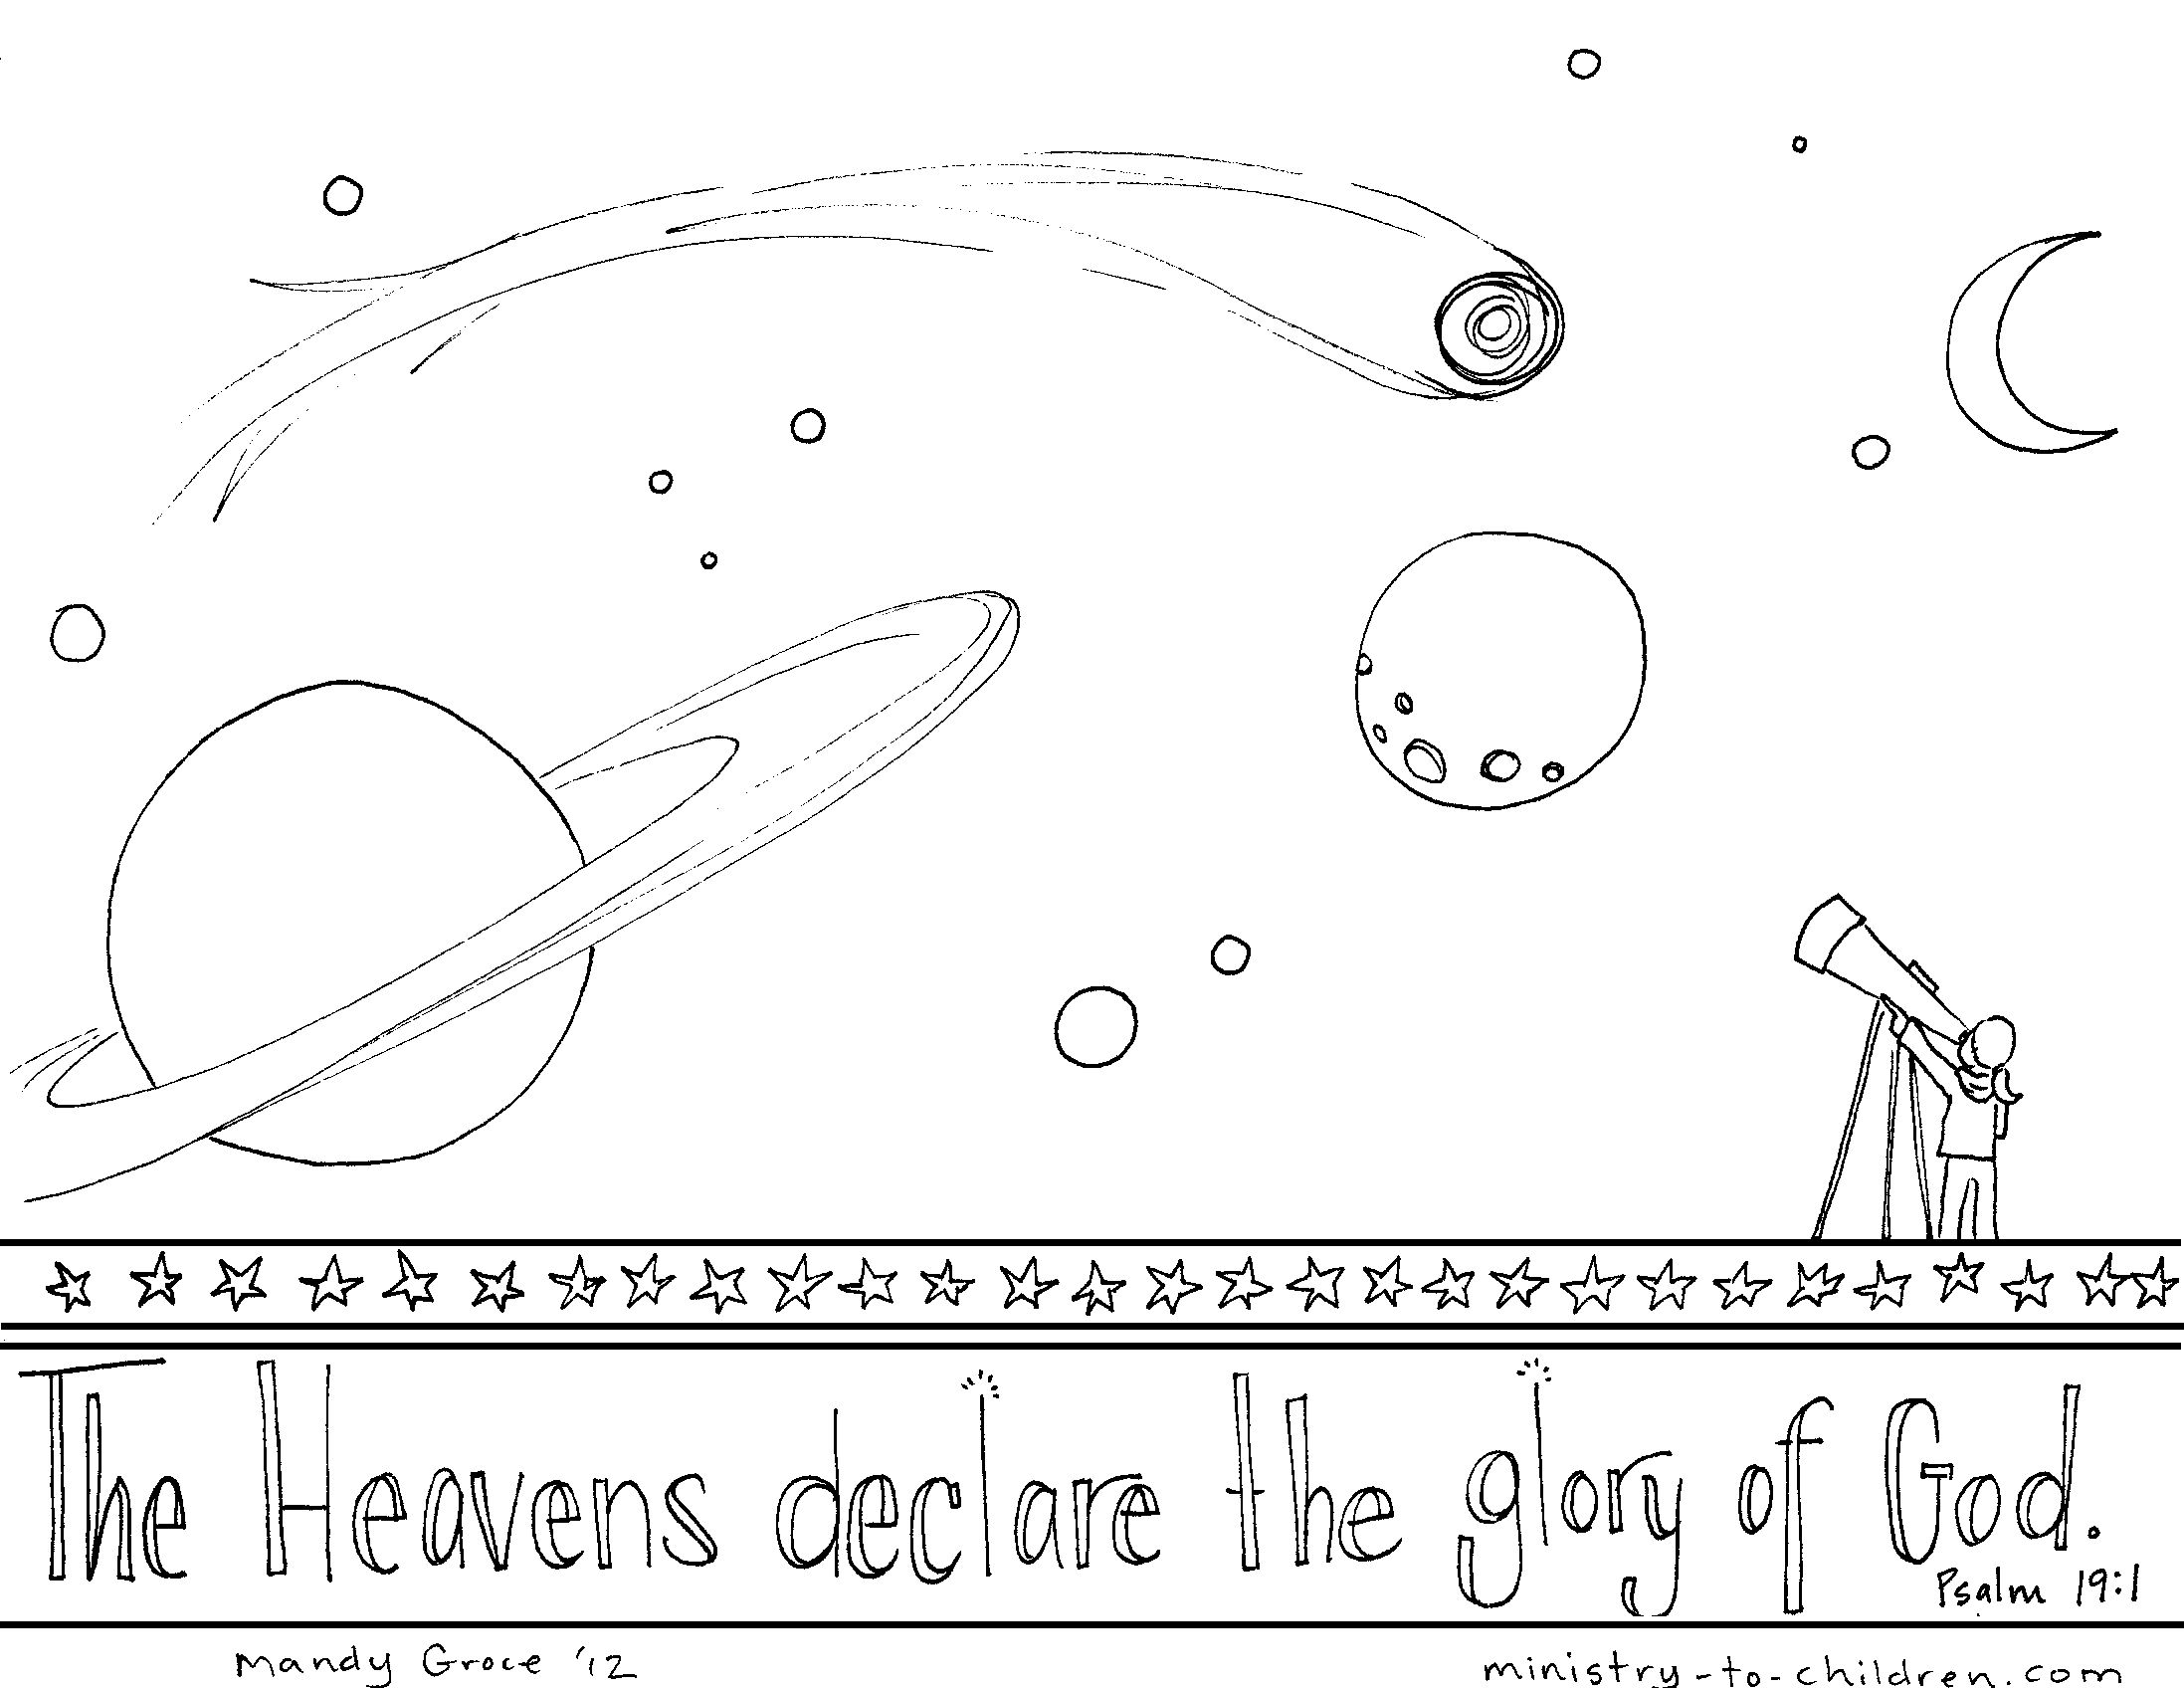 psalms coloring page for kids bing images - Psalm 98 Coloring Page